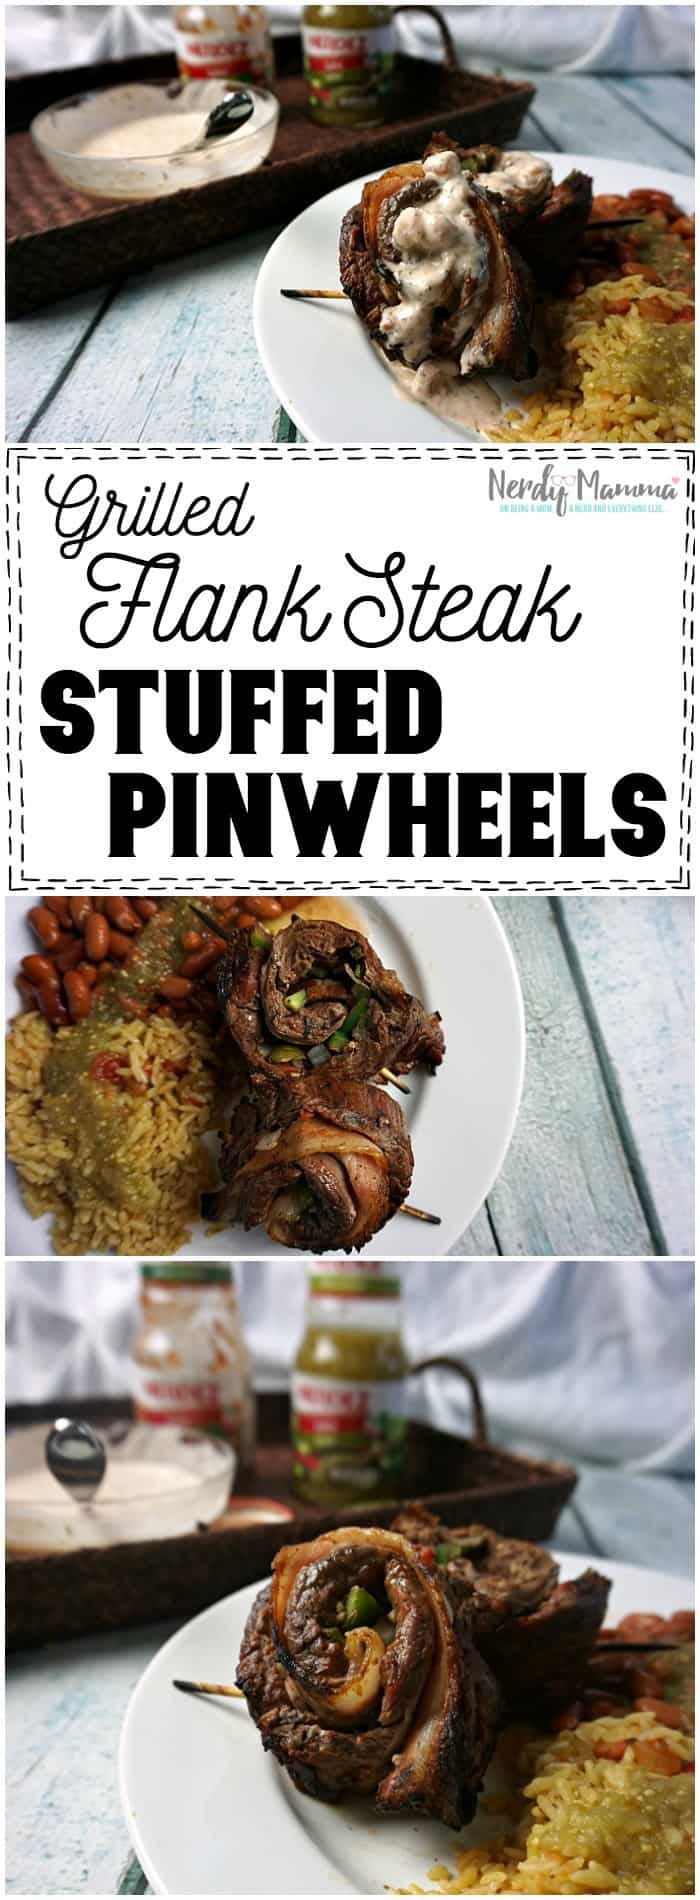 Oh my...this recipe for Grilled Flank Steak Stuffed Pinwheels...is so easy. I love it. And it's gluten-free, dairy-free...just hits all the right points (and it's got BACON! LOL!).